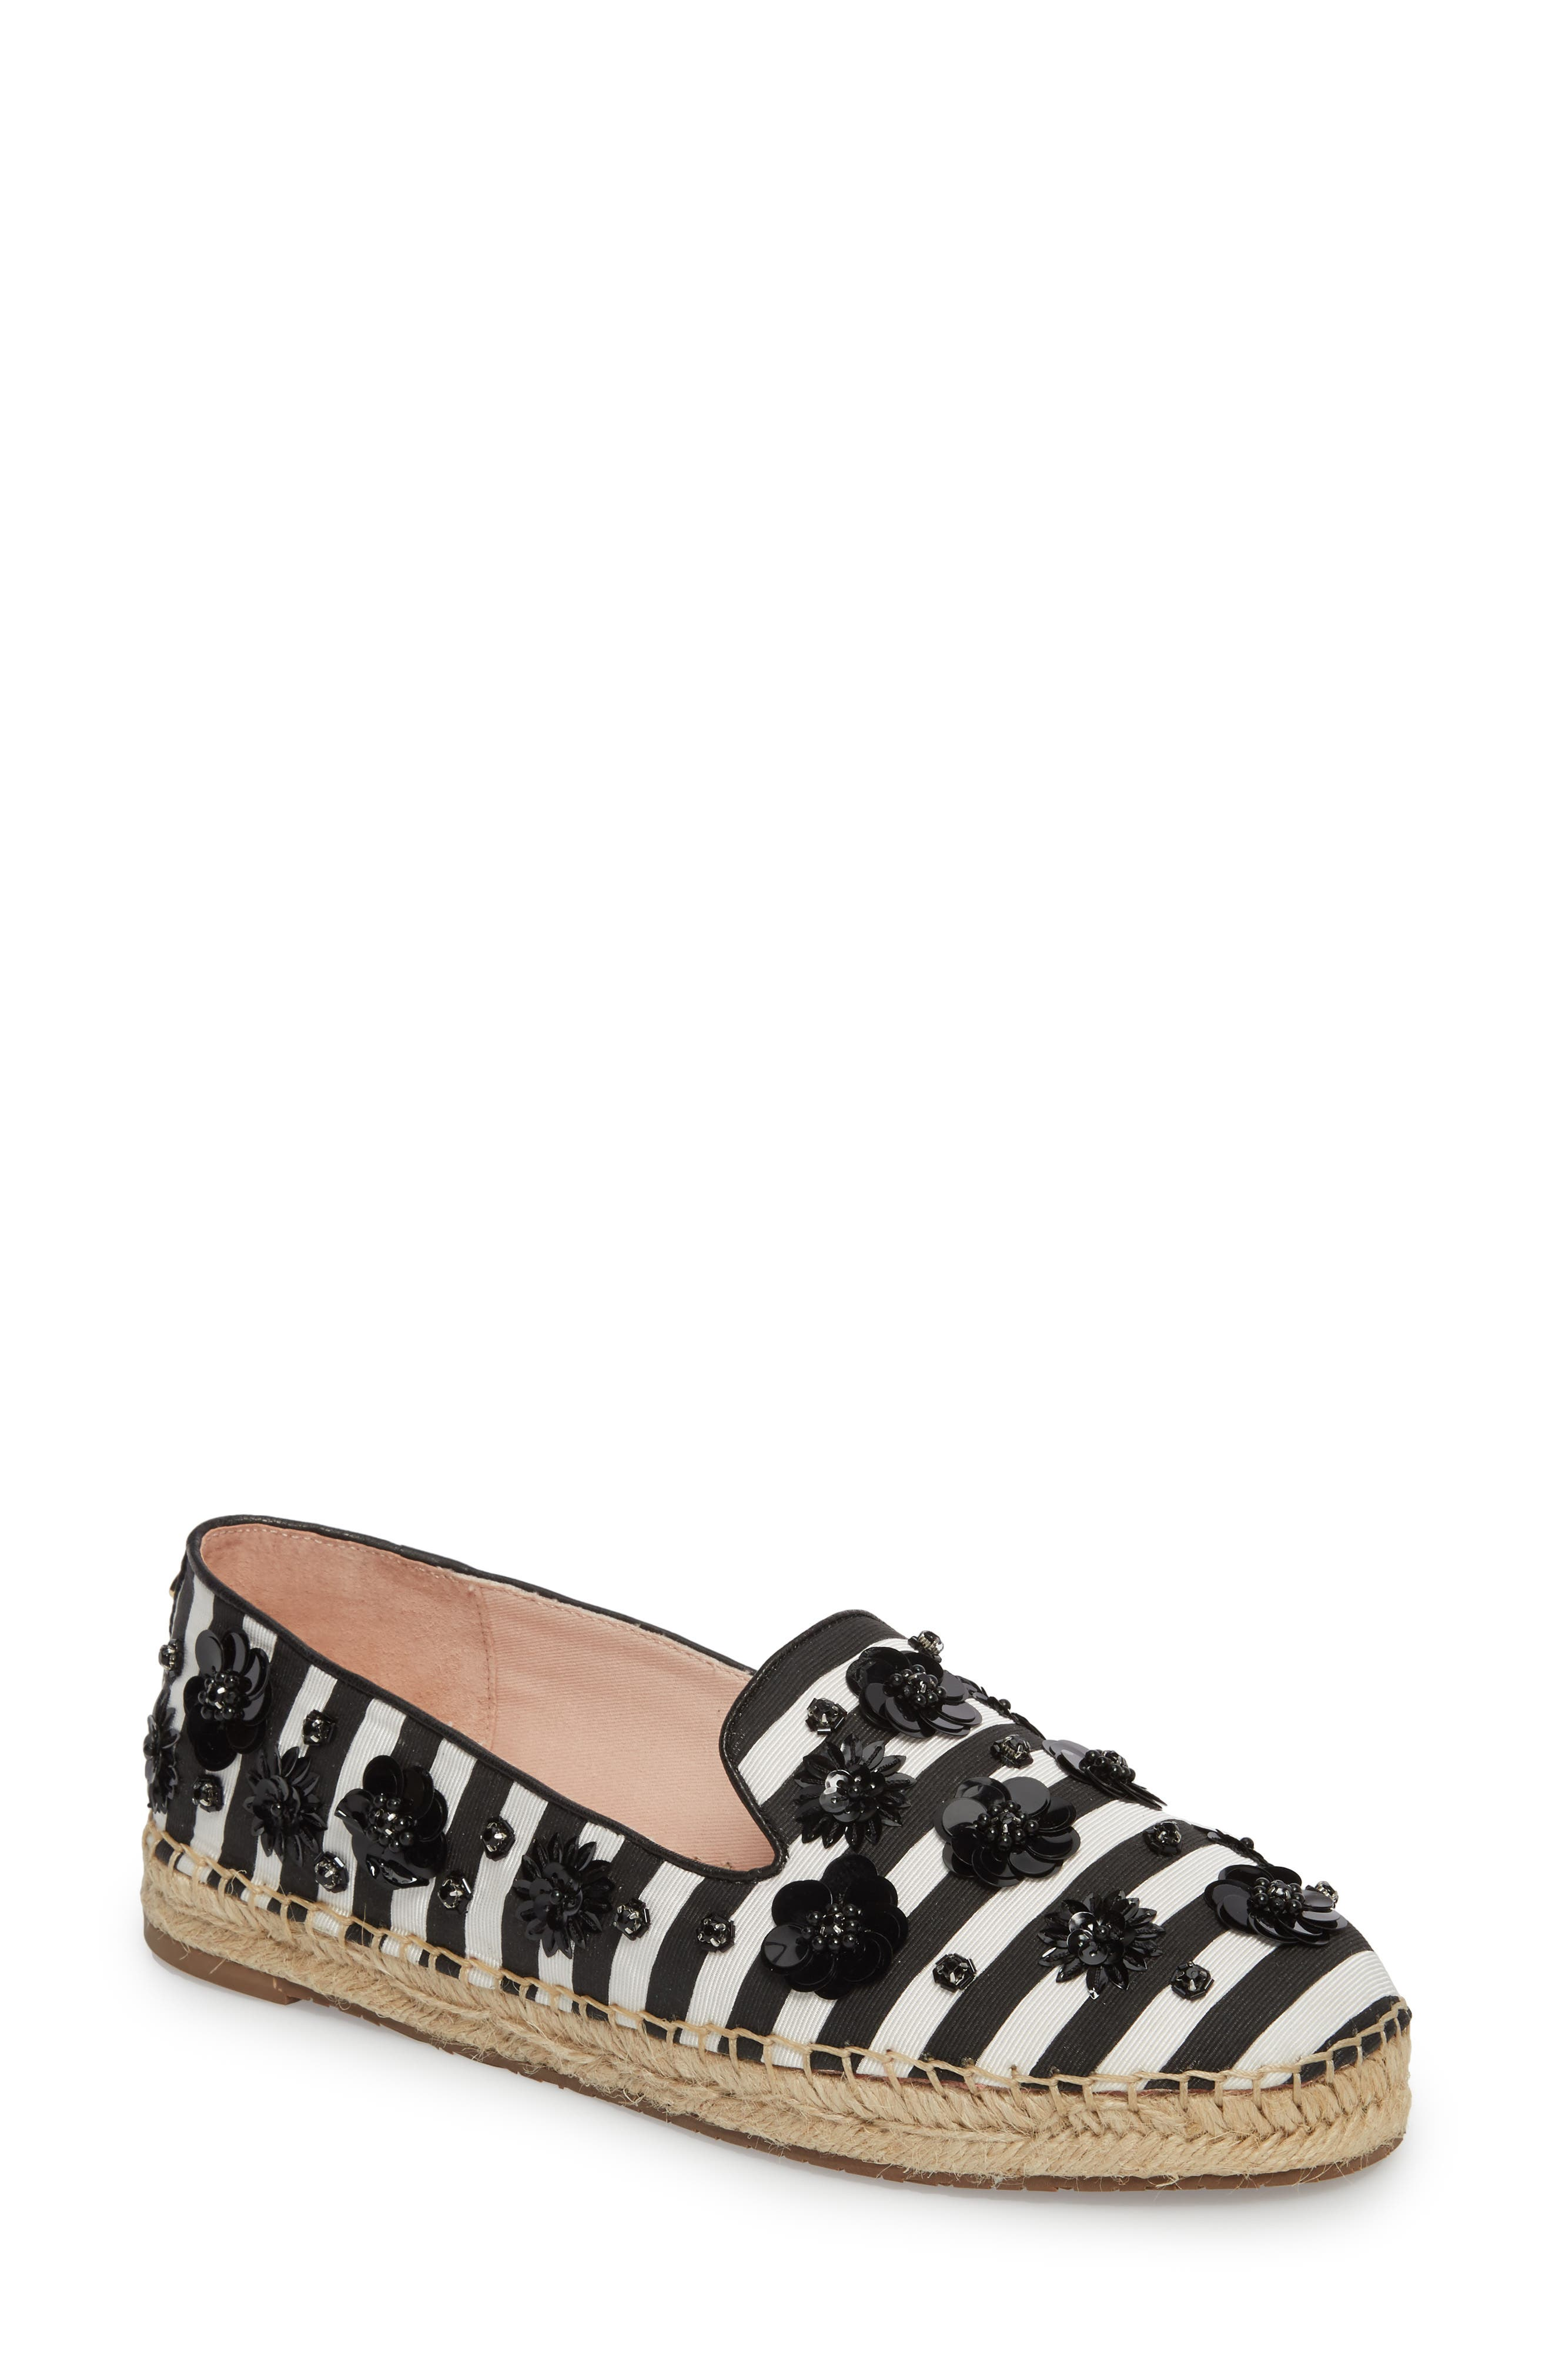 leigh embellished espadrille flat,                             Main thumbnail 1, color,                             Black/ White Striped